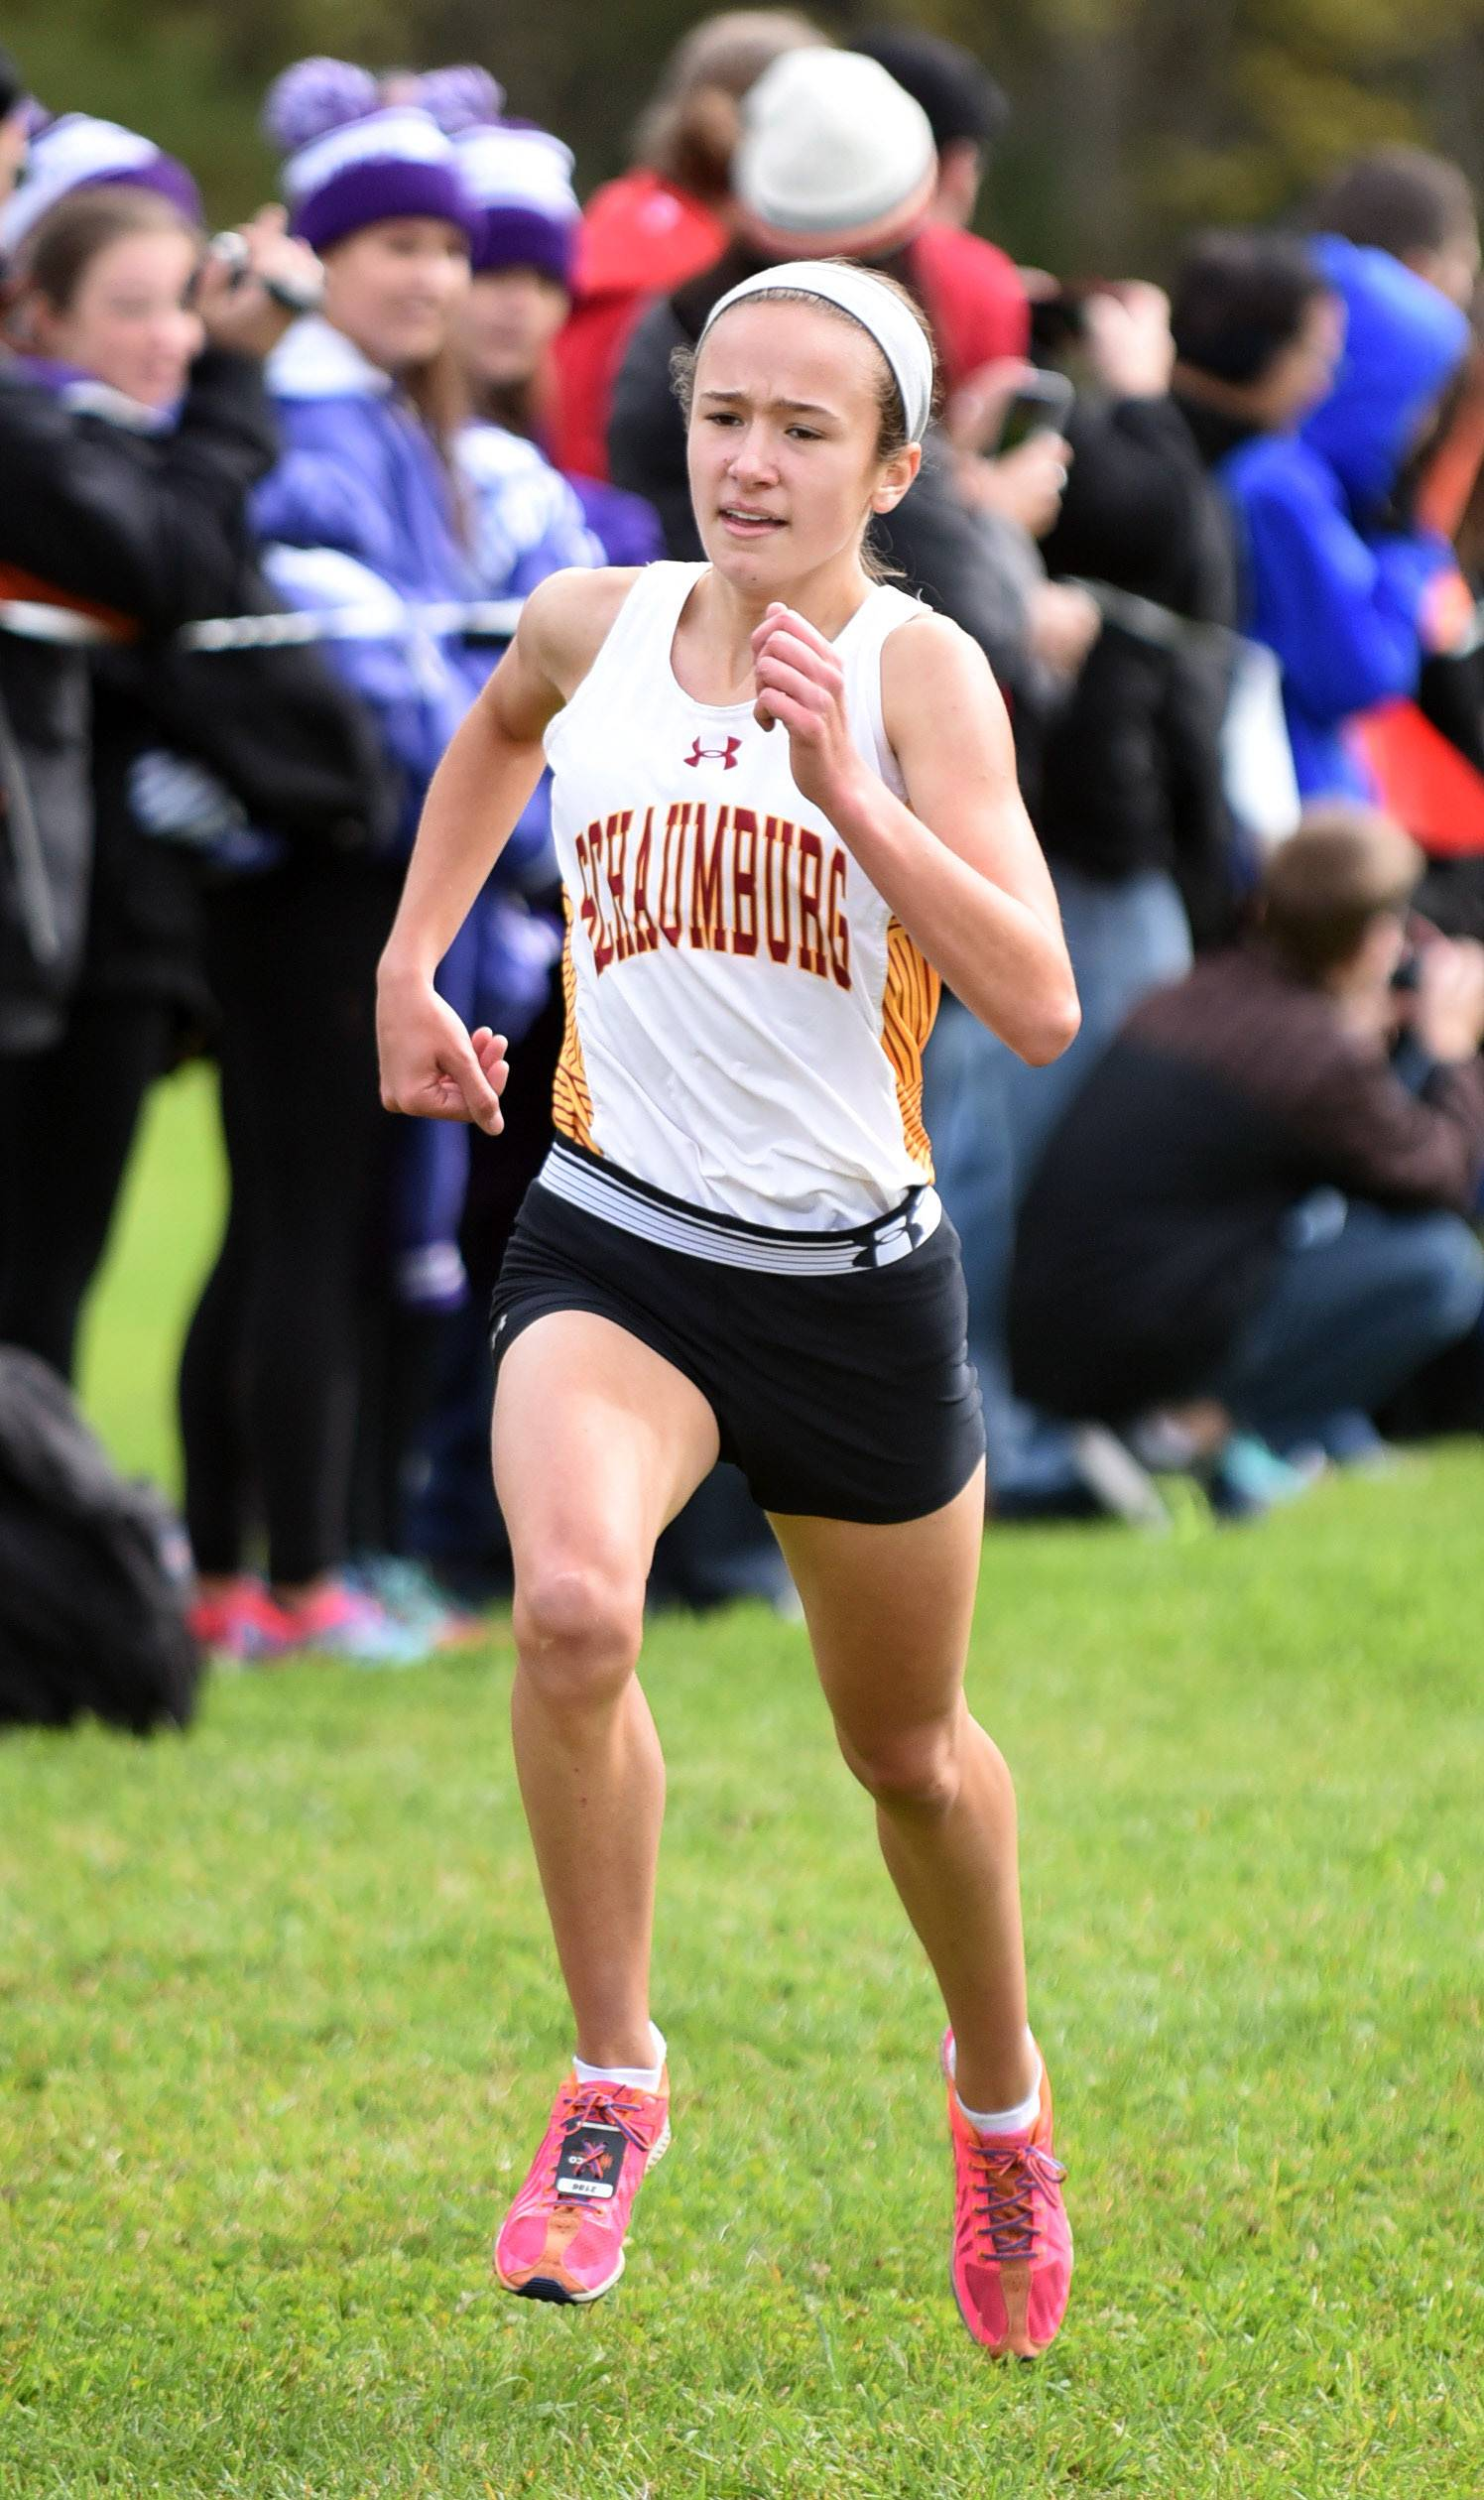 Schaumburg's Maddie Marasco takes third place in the girls varsity run with a time of 17:56.4 at the St. Charles North cross country invitational at LeRoy Oakes Saturday.